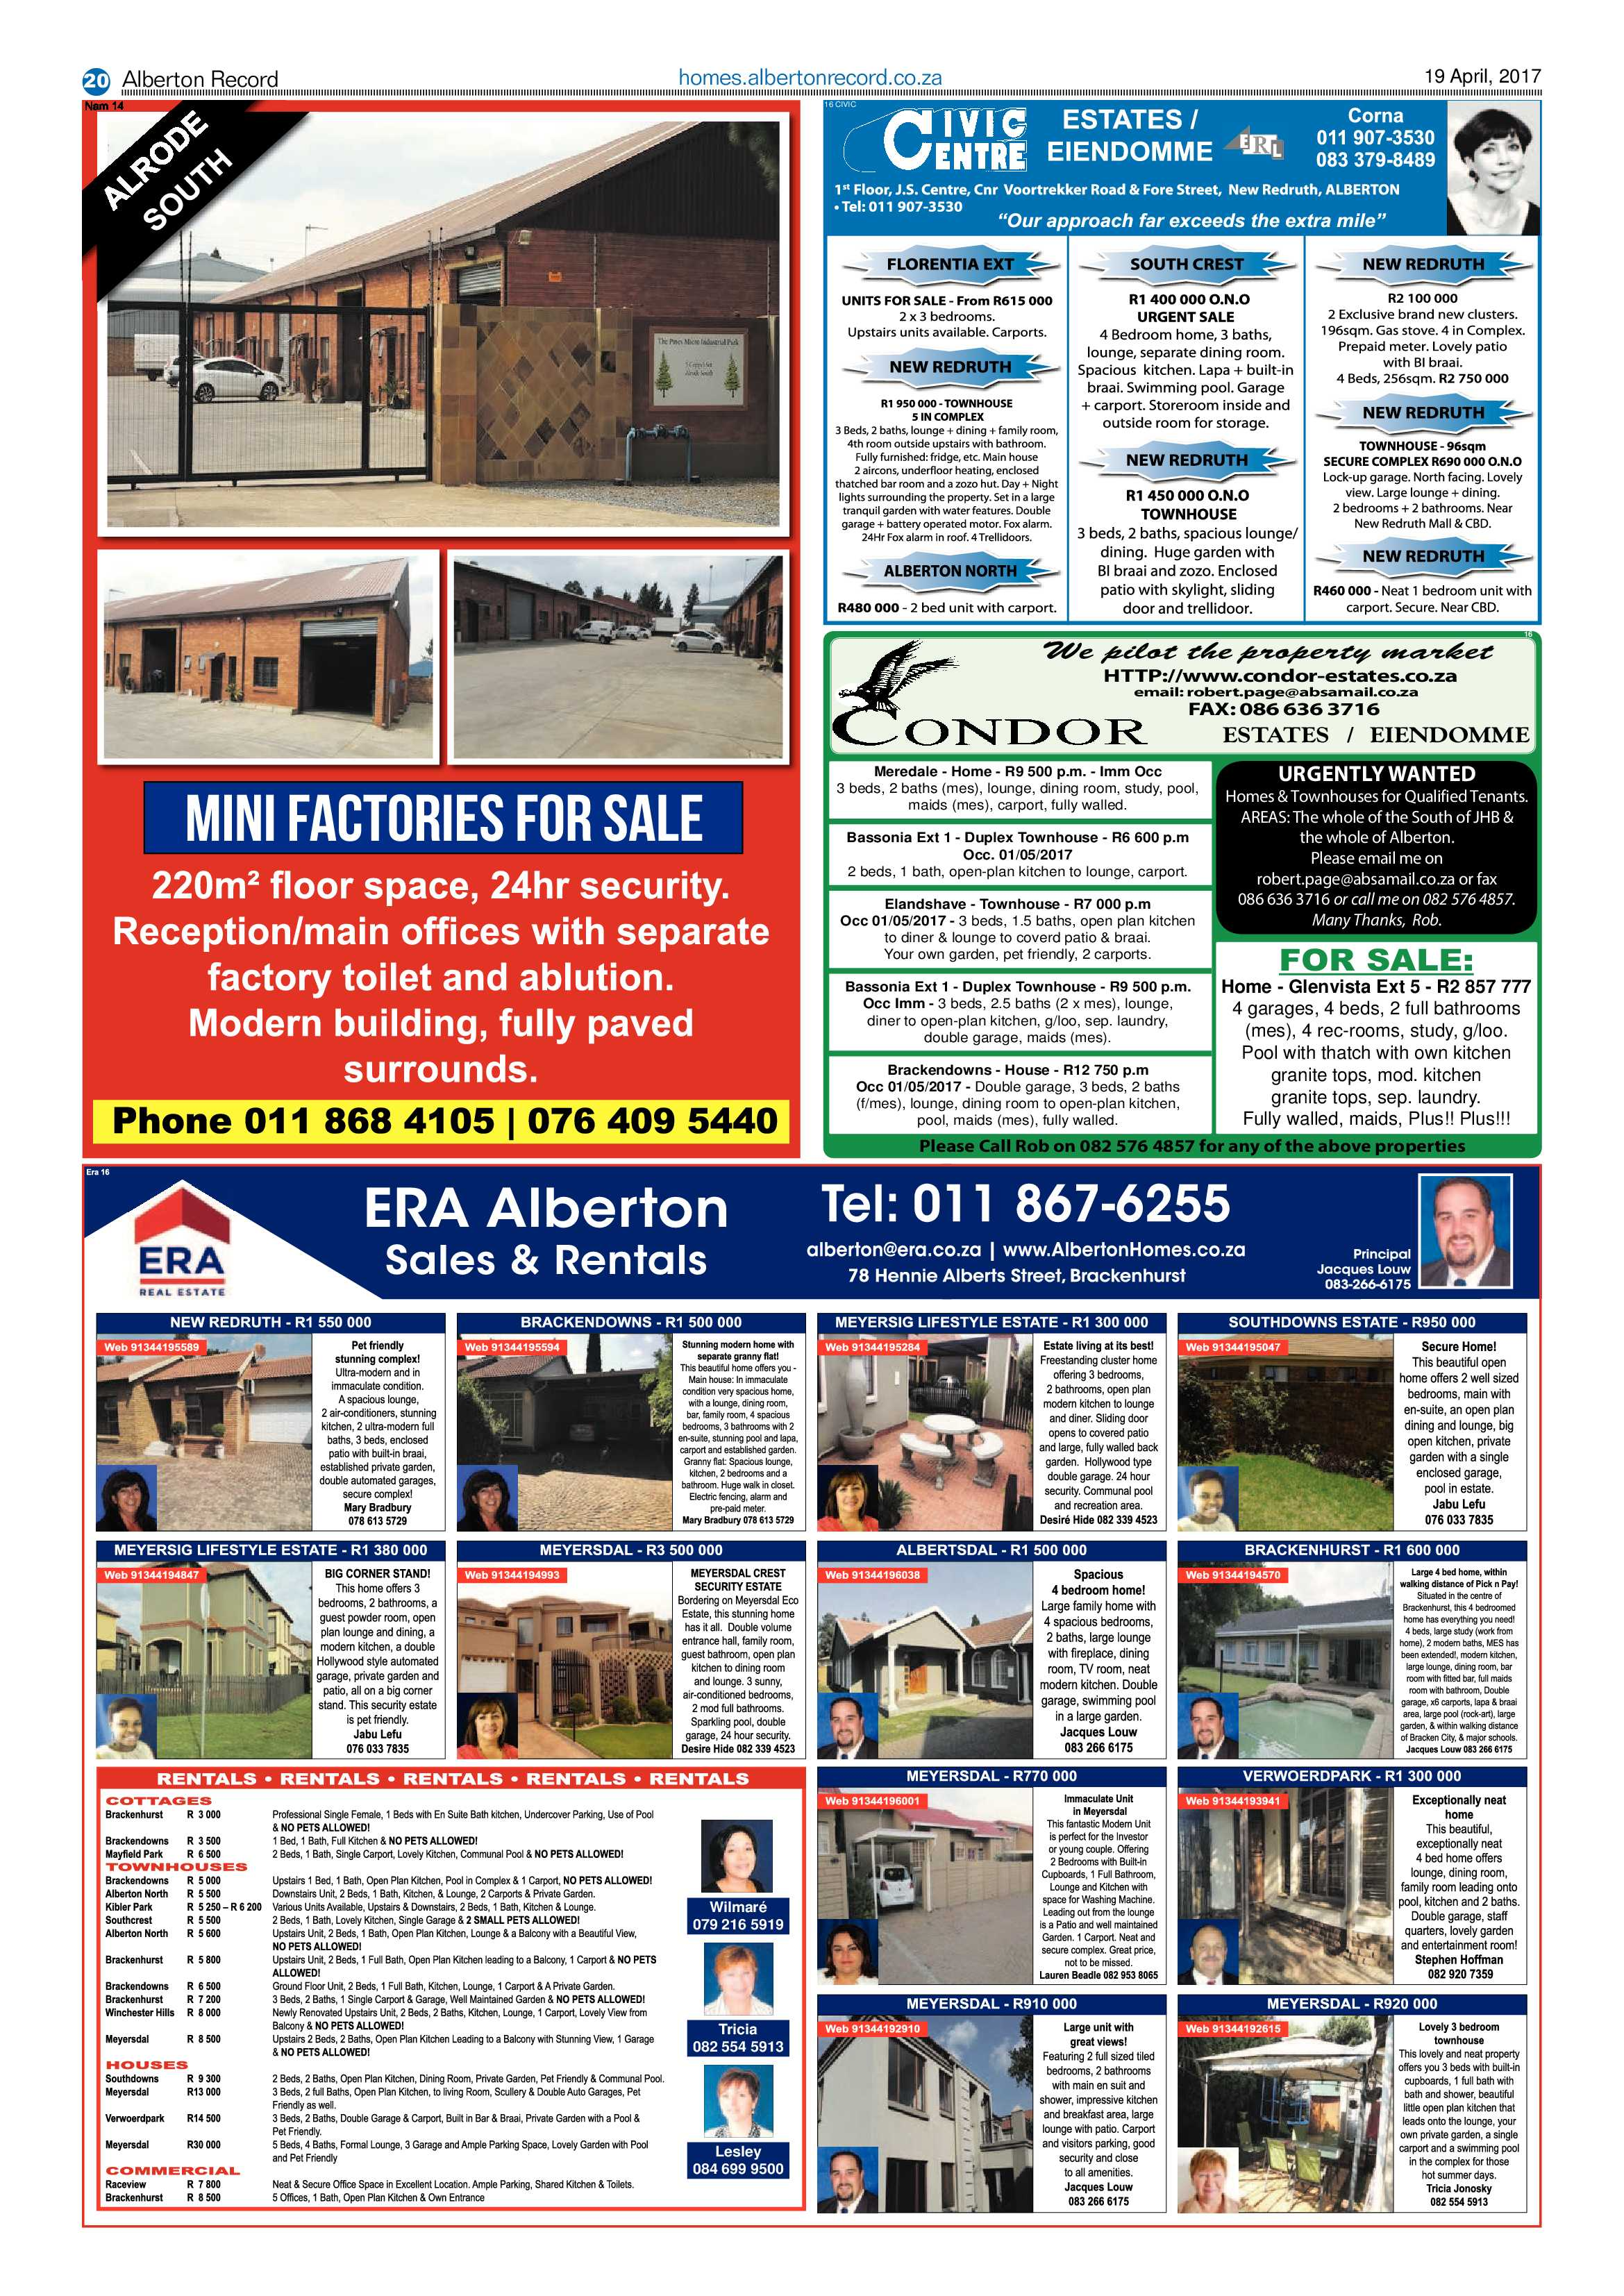 alberton-record-19-april-2017-epapers-page-20